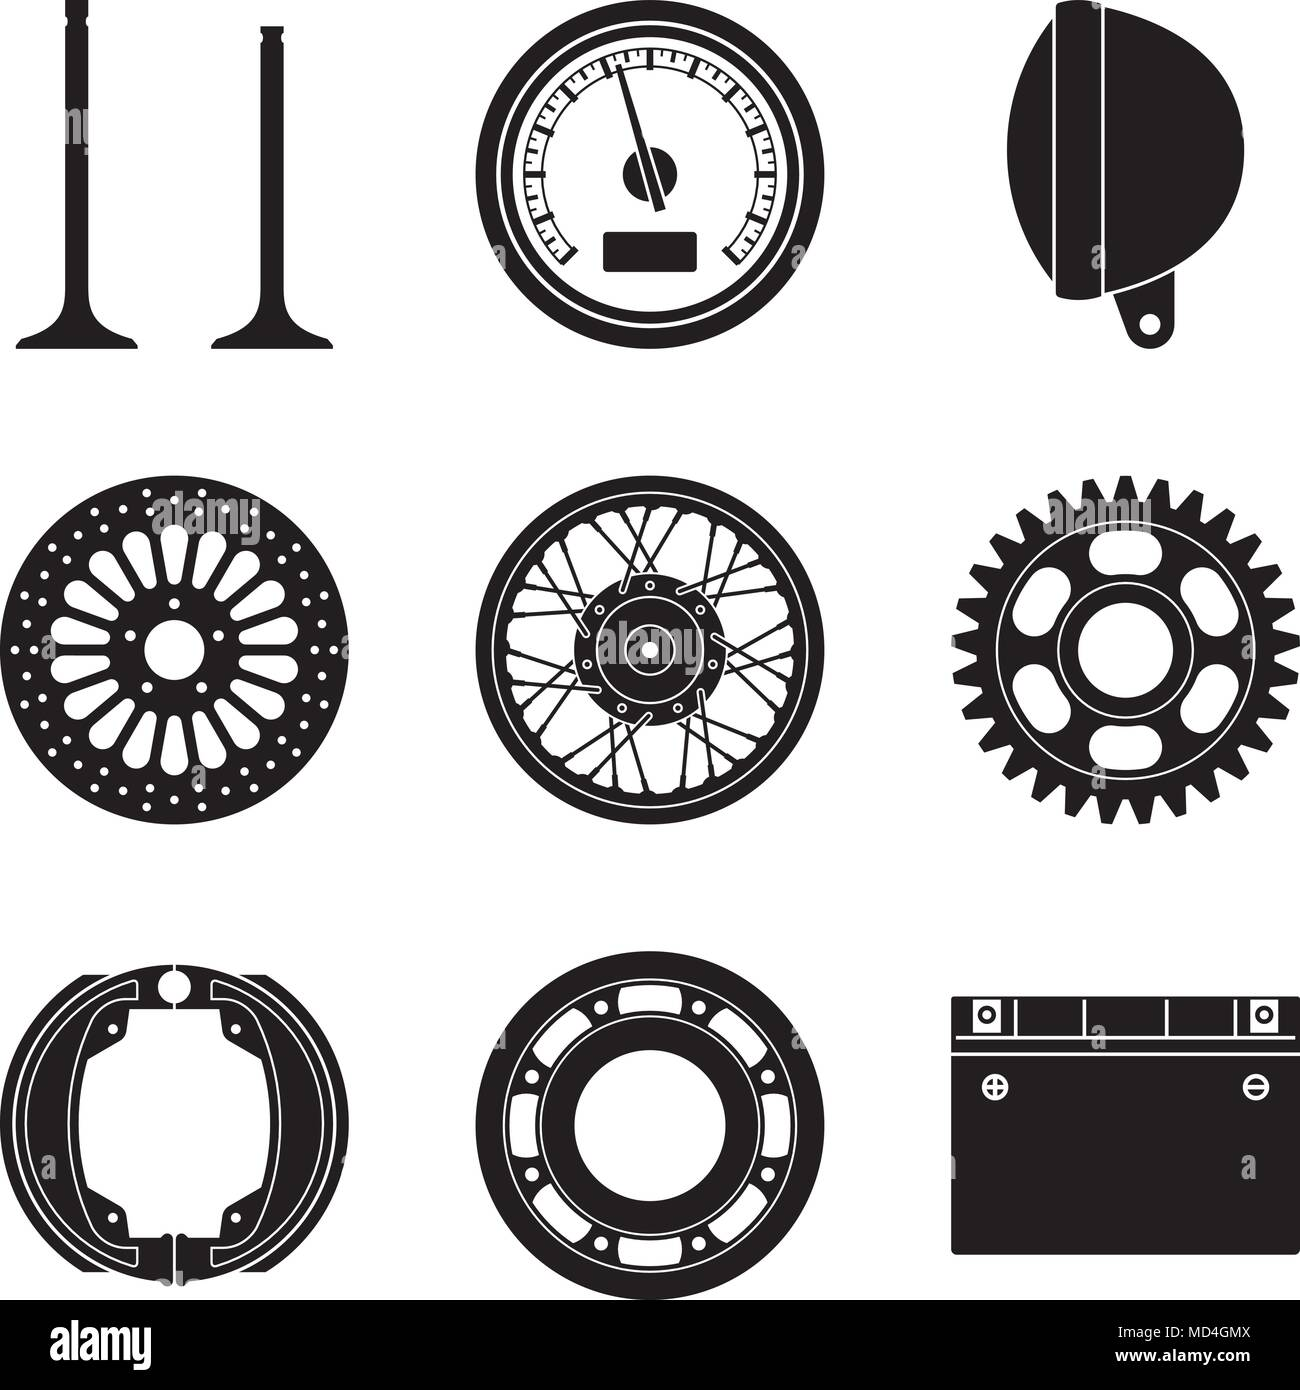 Motorcycle Parts And Accessories Silhouette Vector Stock Vector Art